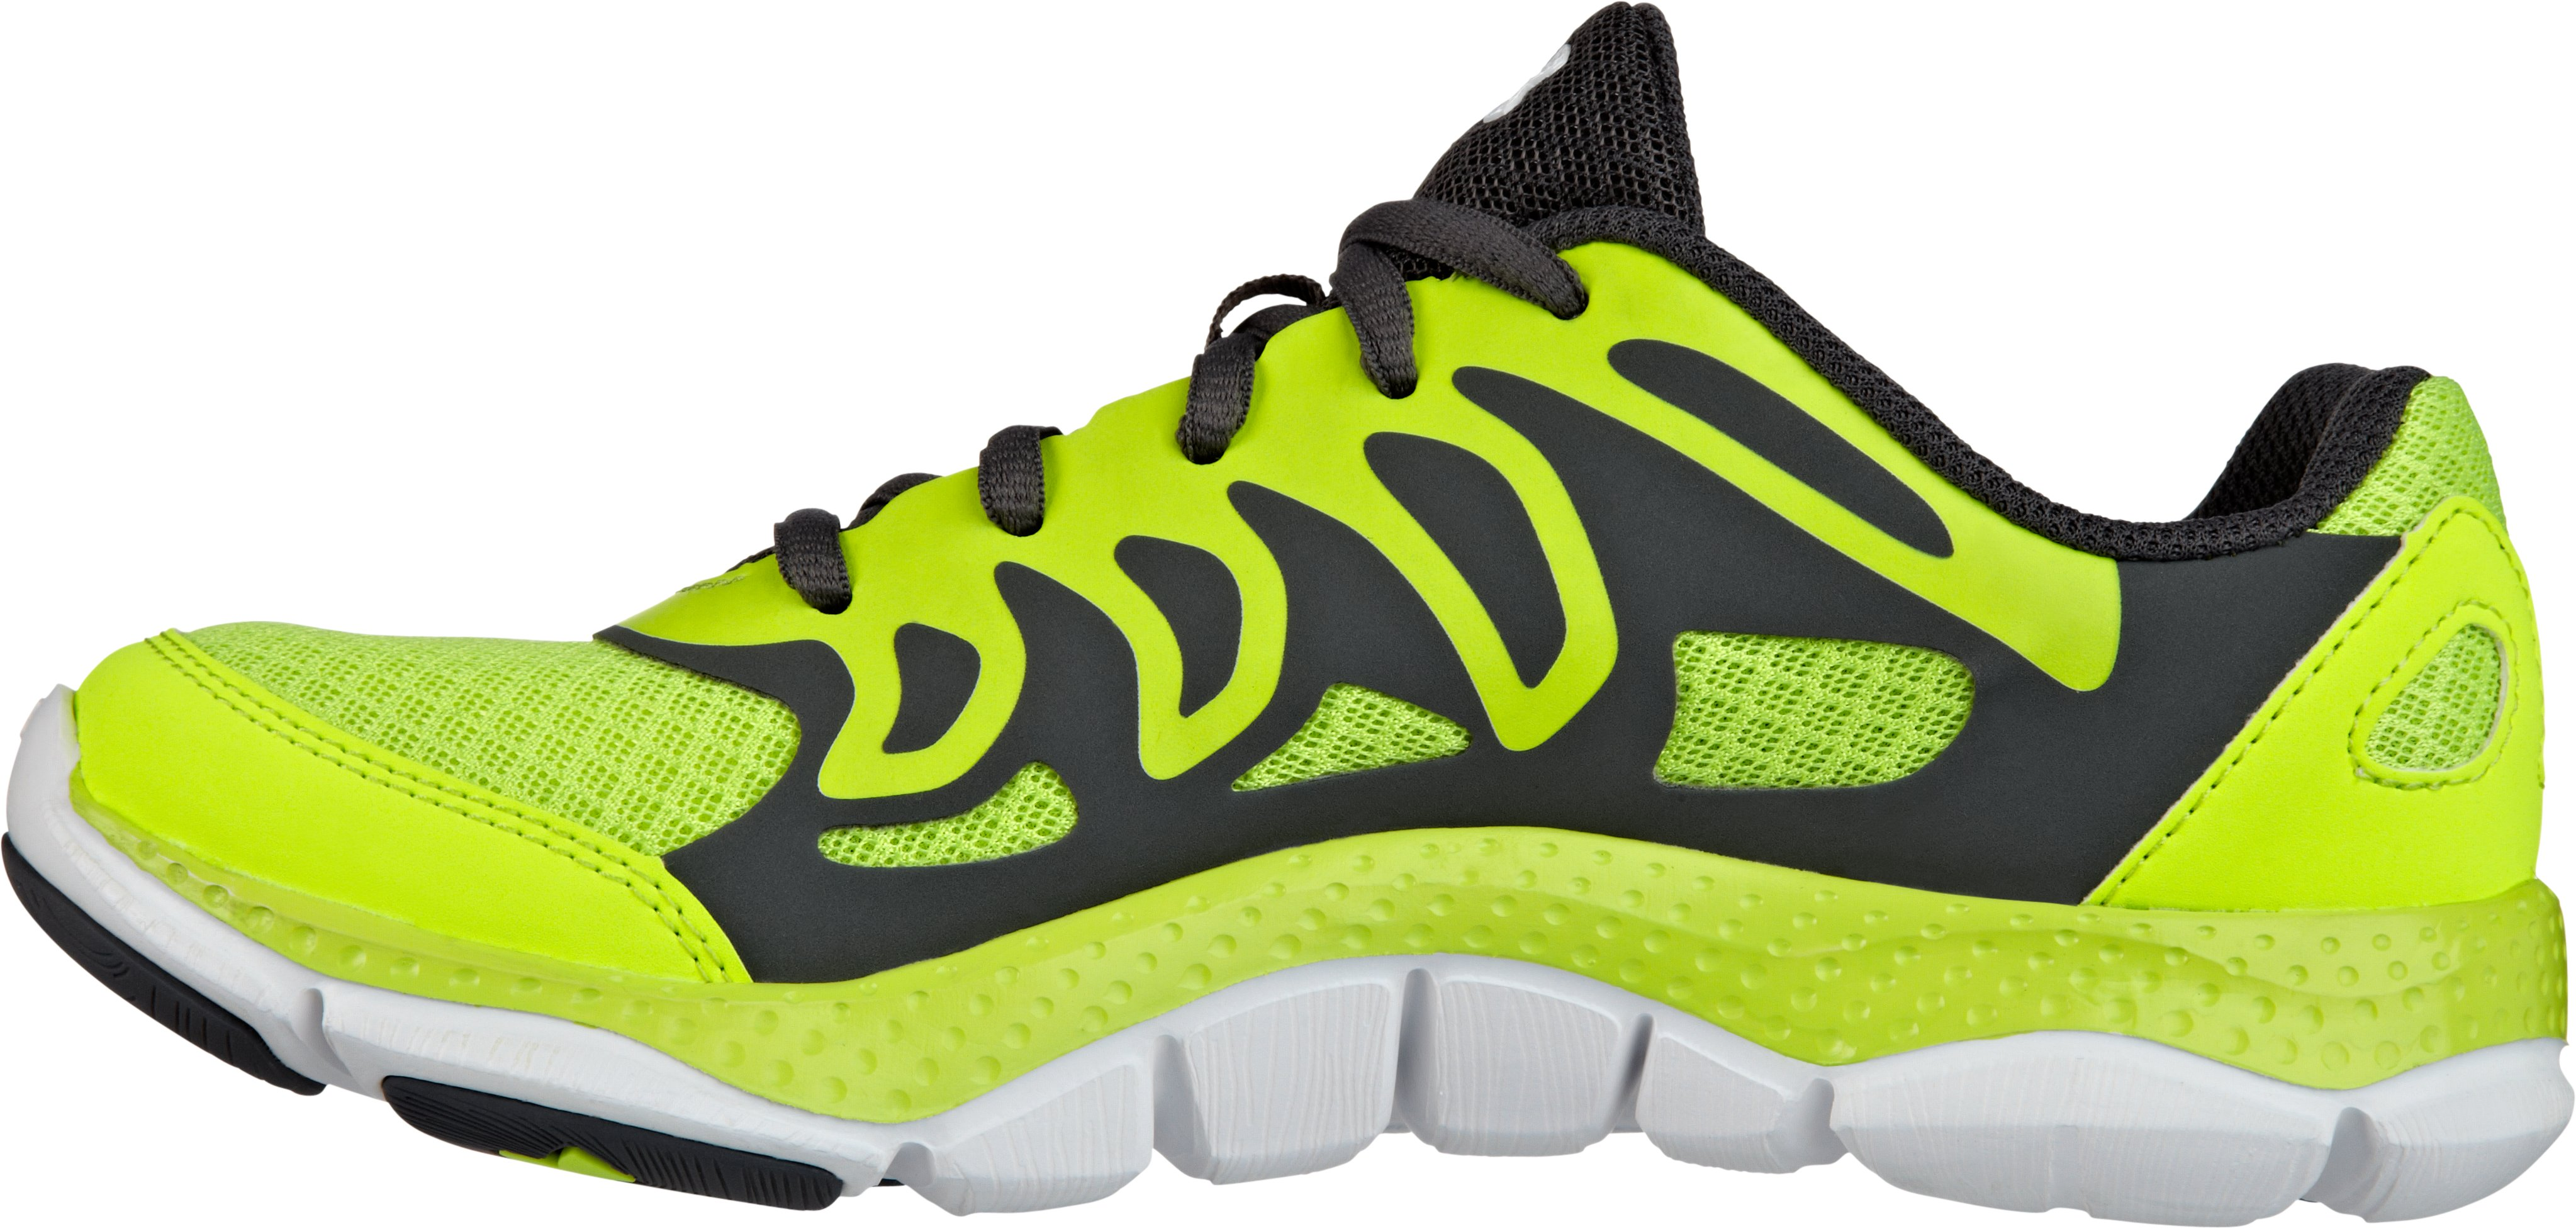 Boys' Micro G® Engage Grade School Running Shoes, High-Vis Yellow